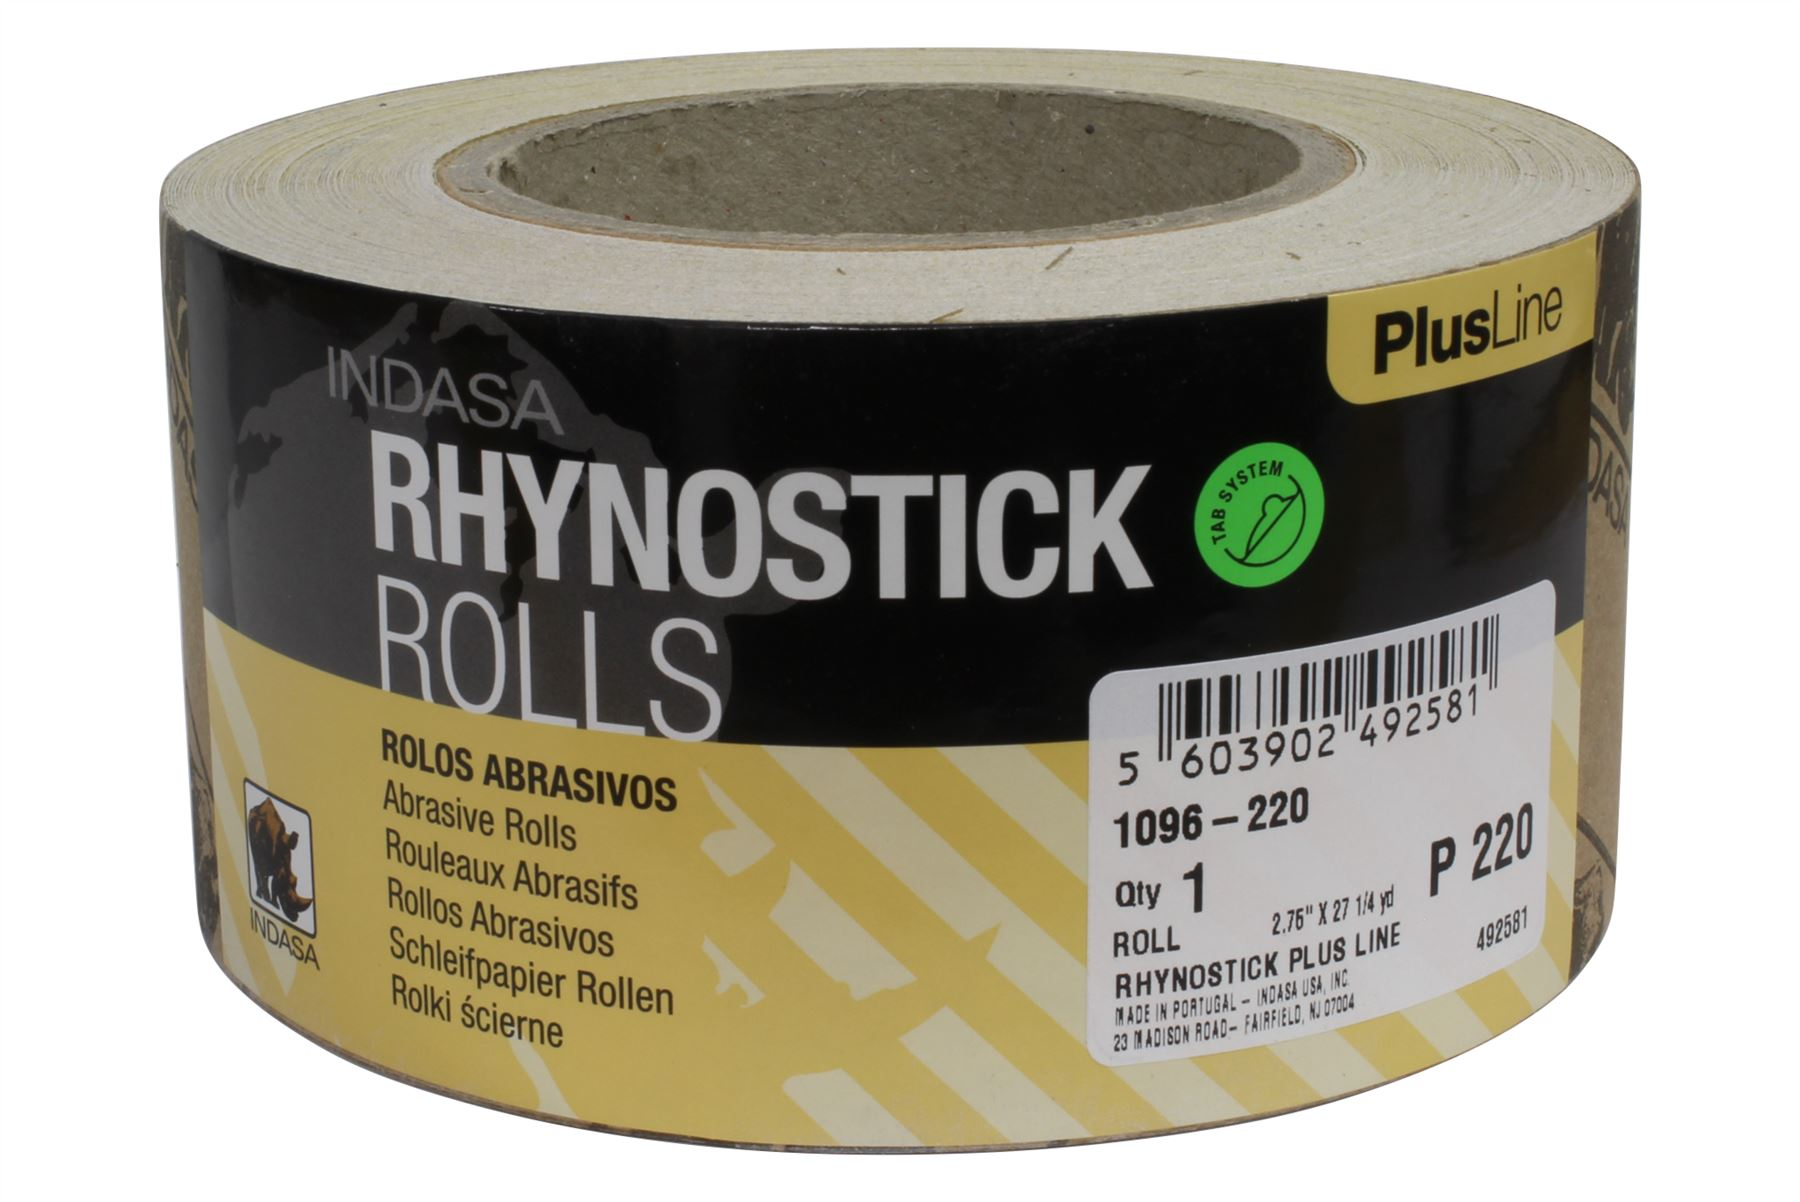 Indasa Rhynostick Psa Sandpaper 2 75 Quot X 27 2 Yds Roll For